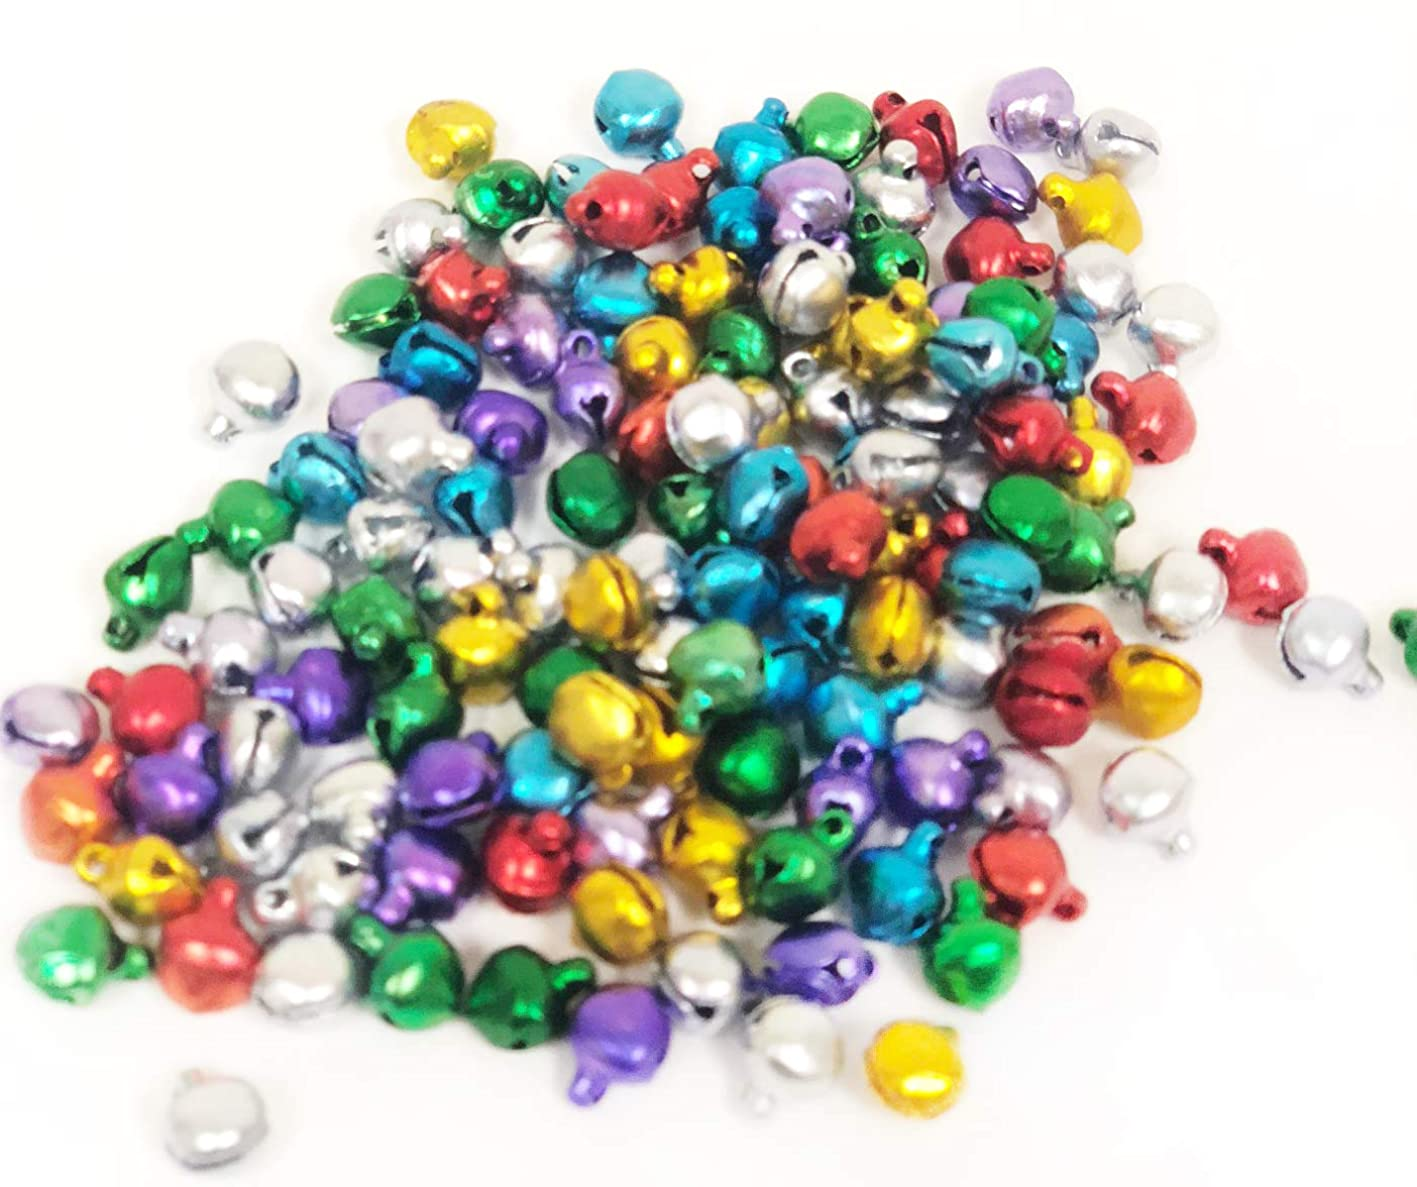 6 mm Bright Jewel Aluminum Jingle Bells, Pack 144 tgfzihounyh854